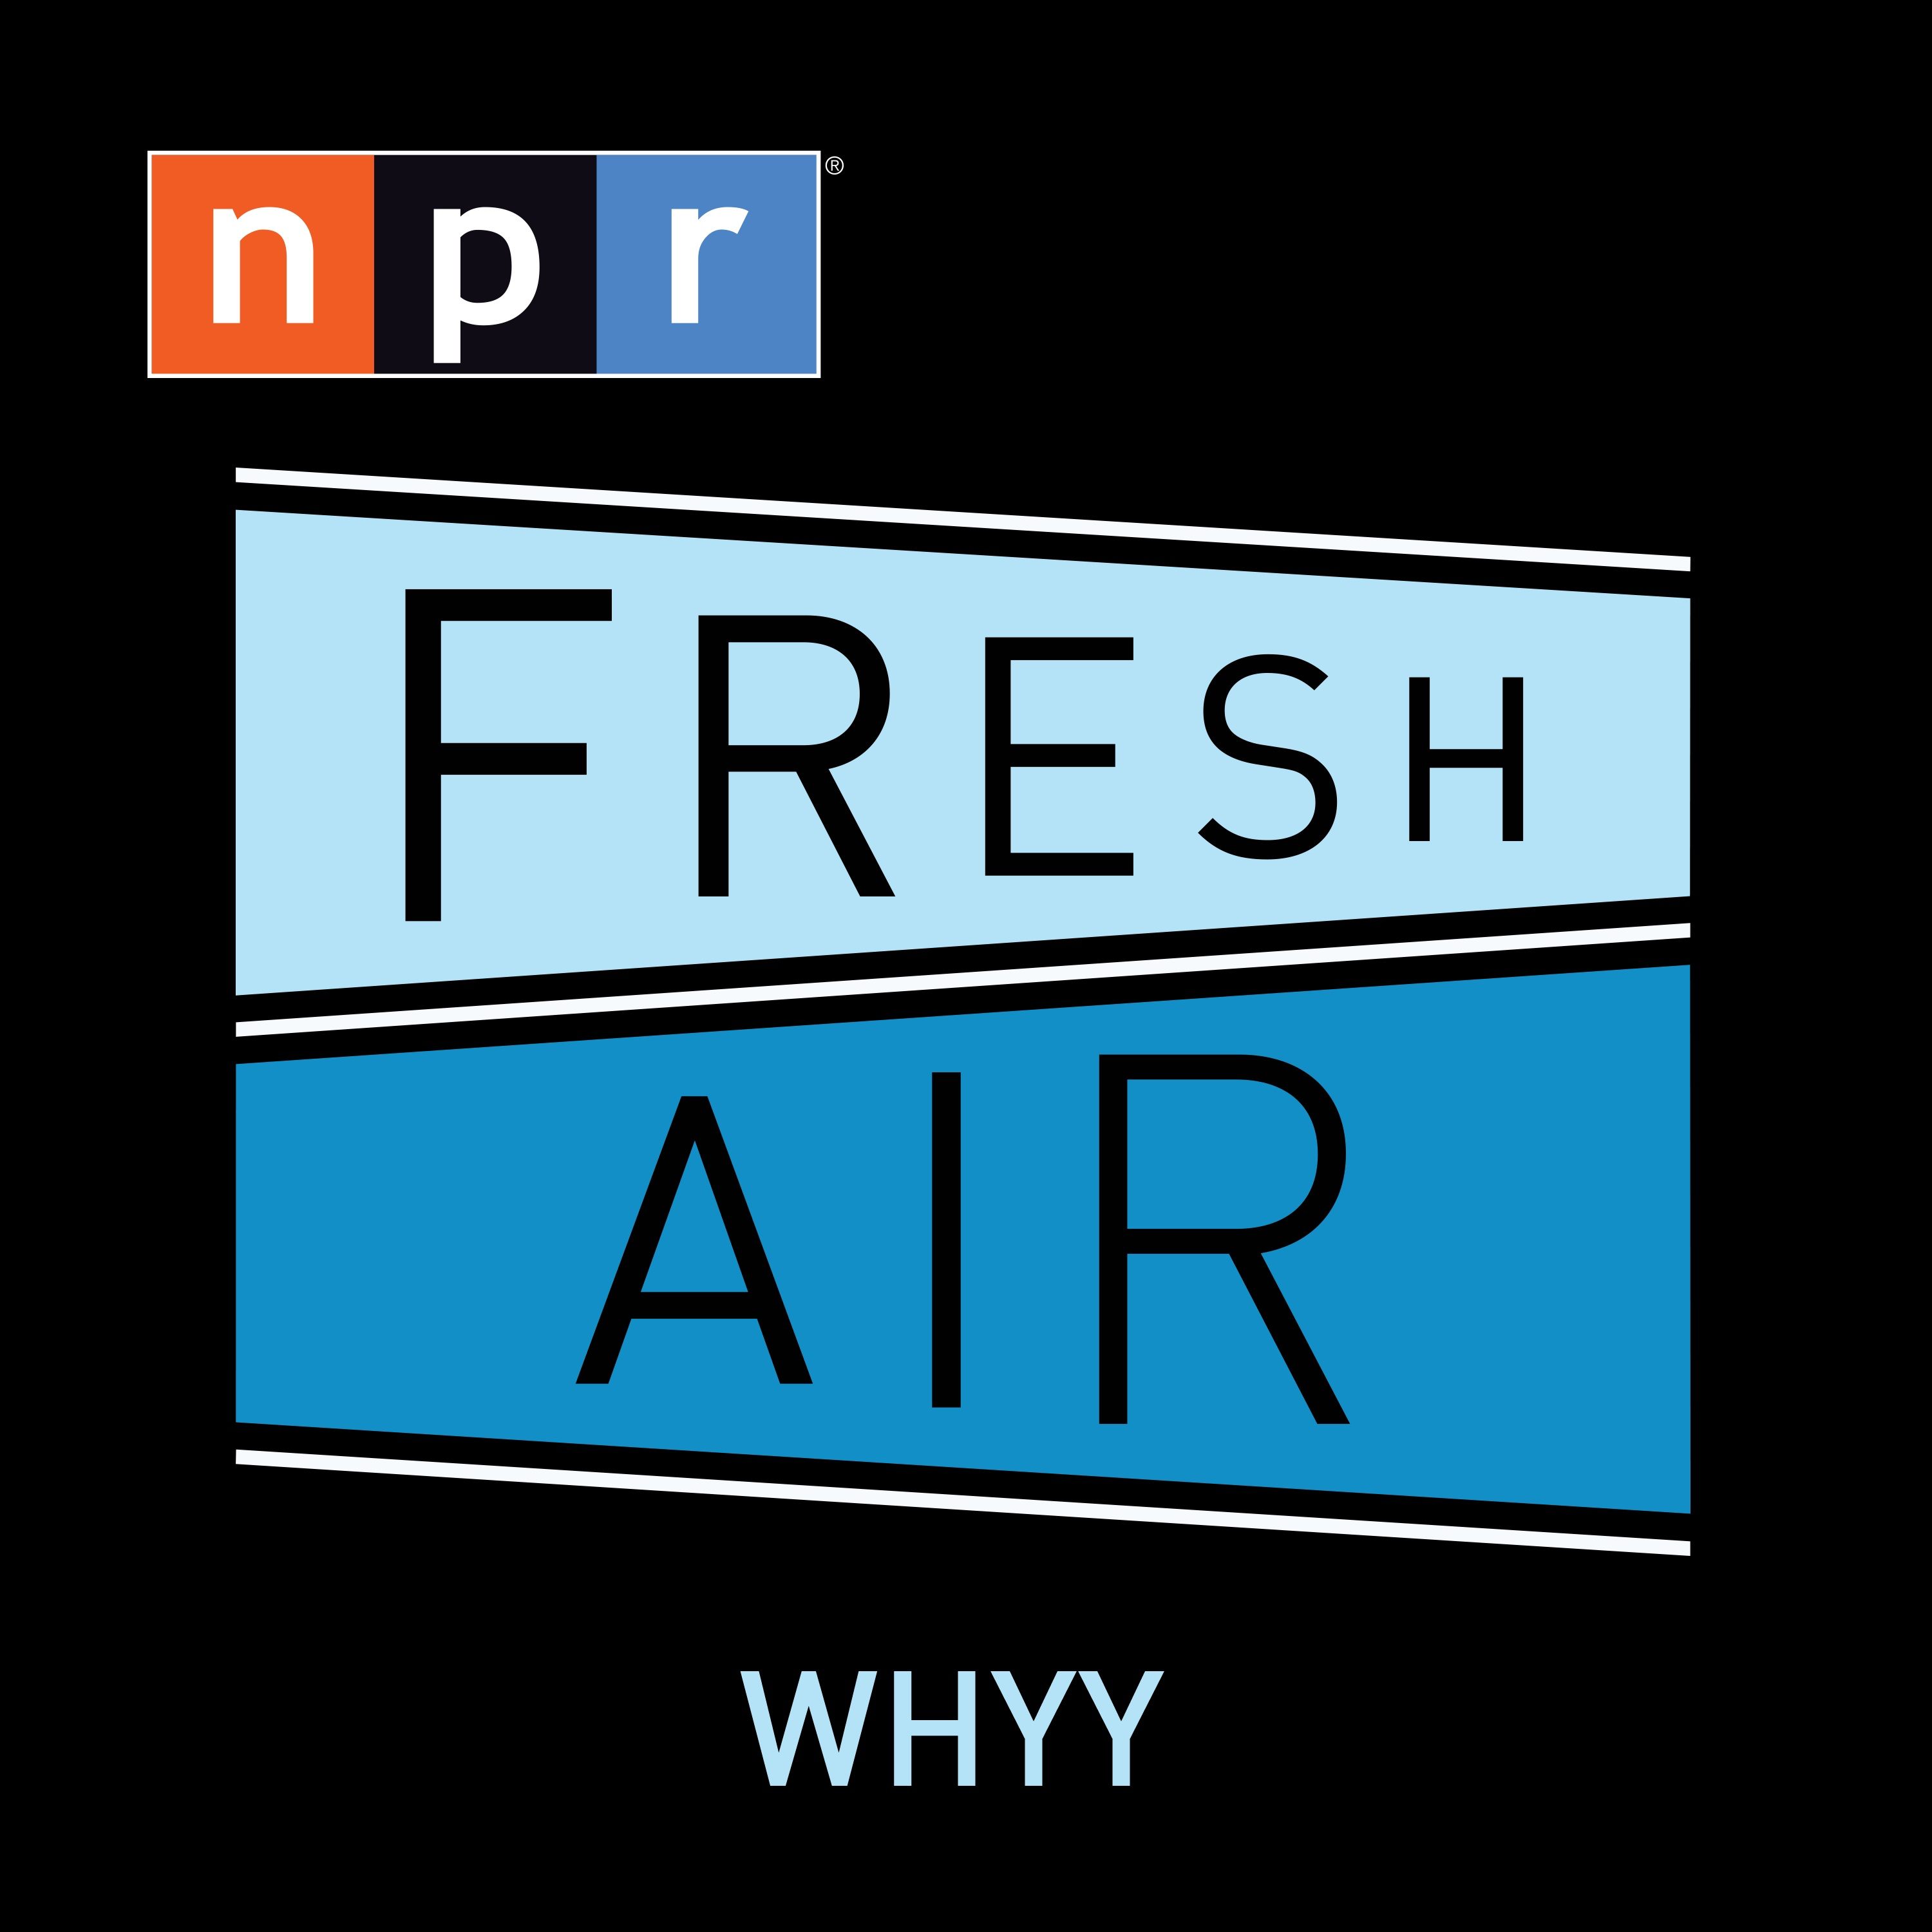 NPR Programs: Fresh Air Podcast